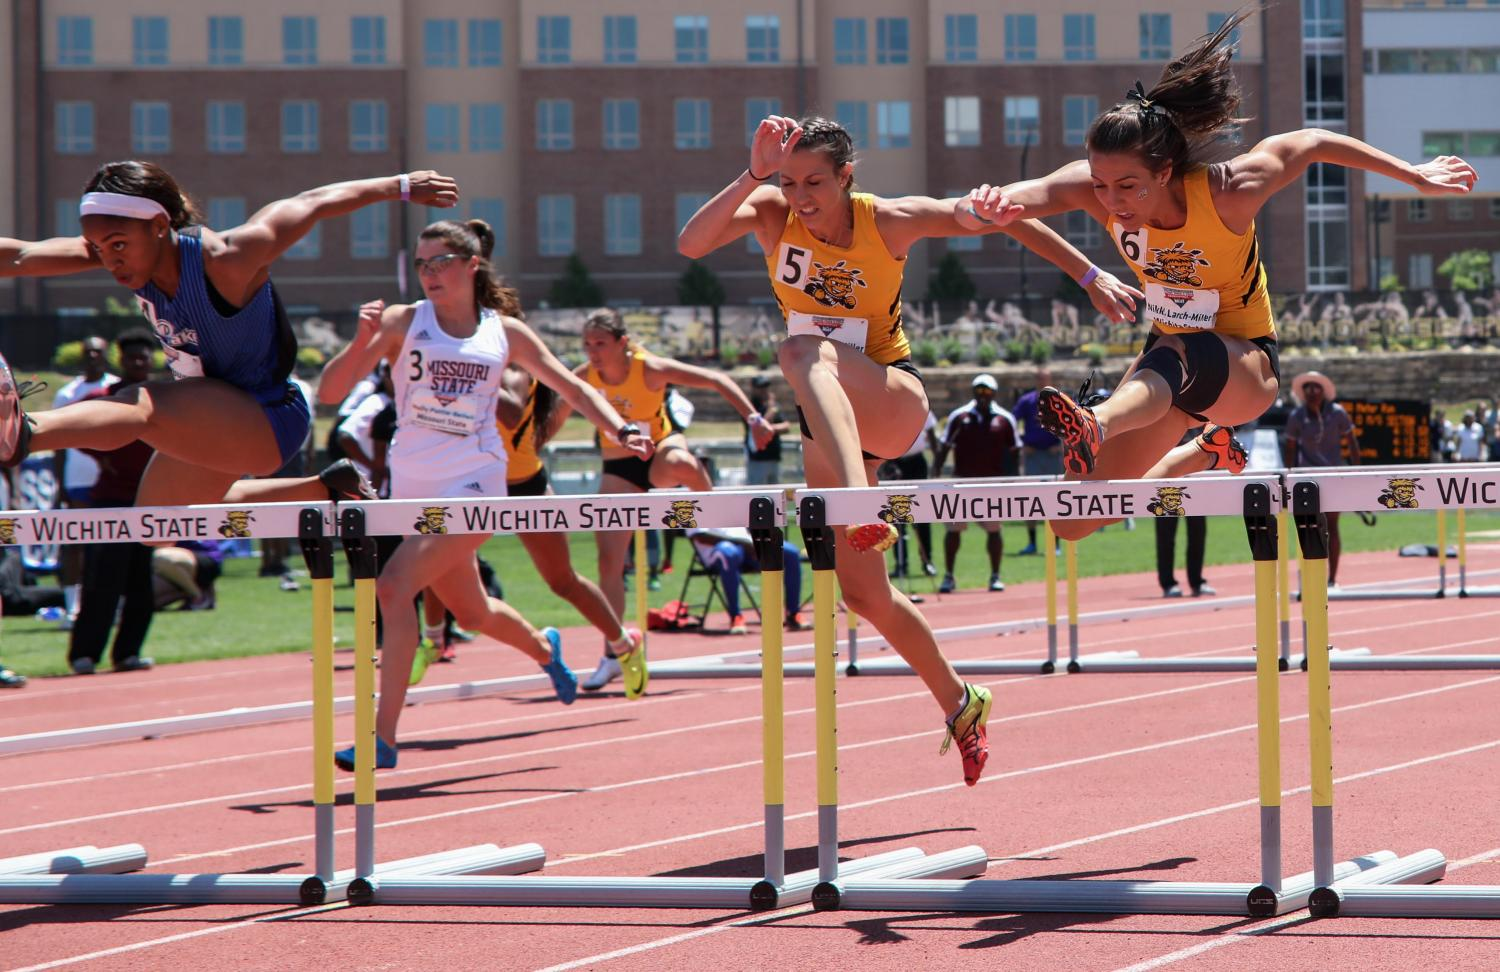 Nikki (6) and Taylor (5) Larch-Miller try to catch Mary Young in the 100 meter hurdles Sunday at the Missouri Valley Conference Outdoor Track and Field Championship. Young placed first followed by Nikki then Taylor. (May 14, 2017)